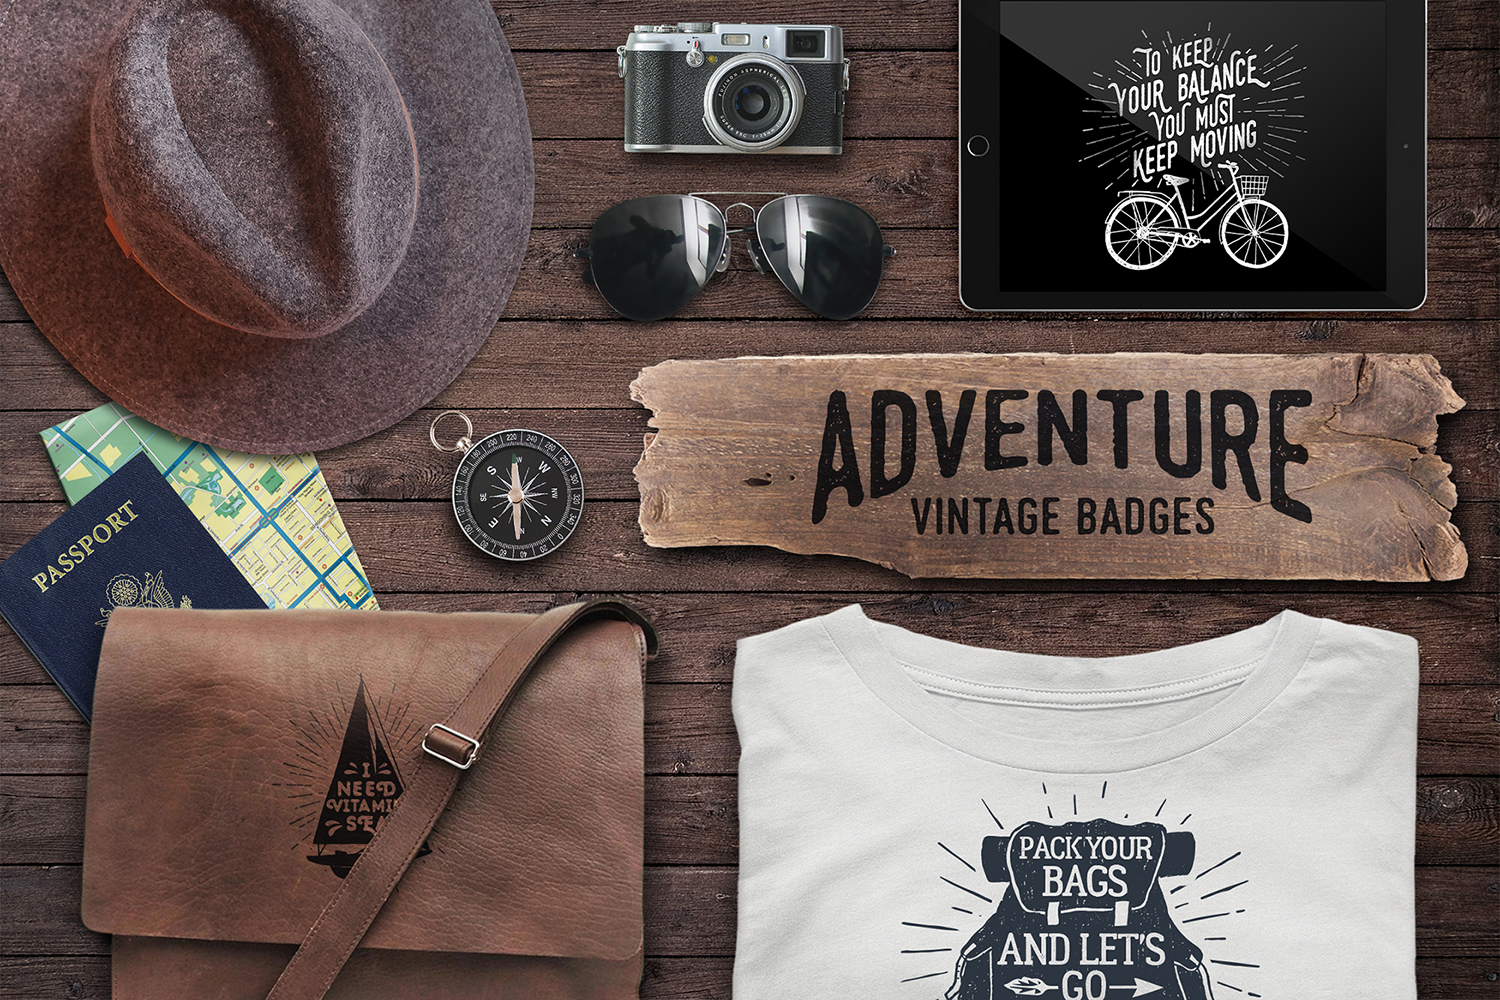 Adventure Vintage Badges Graphic By Cosmic Store Image 4